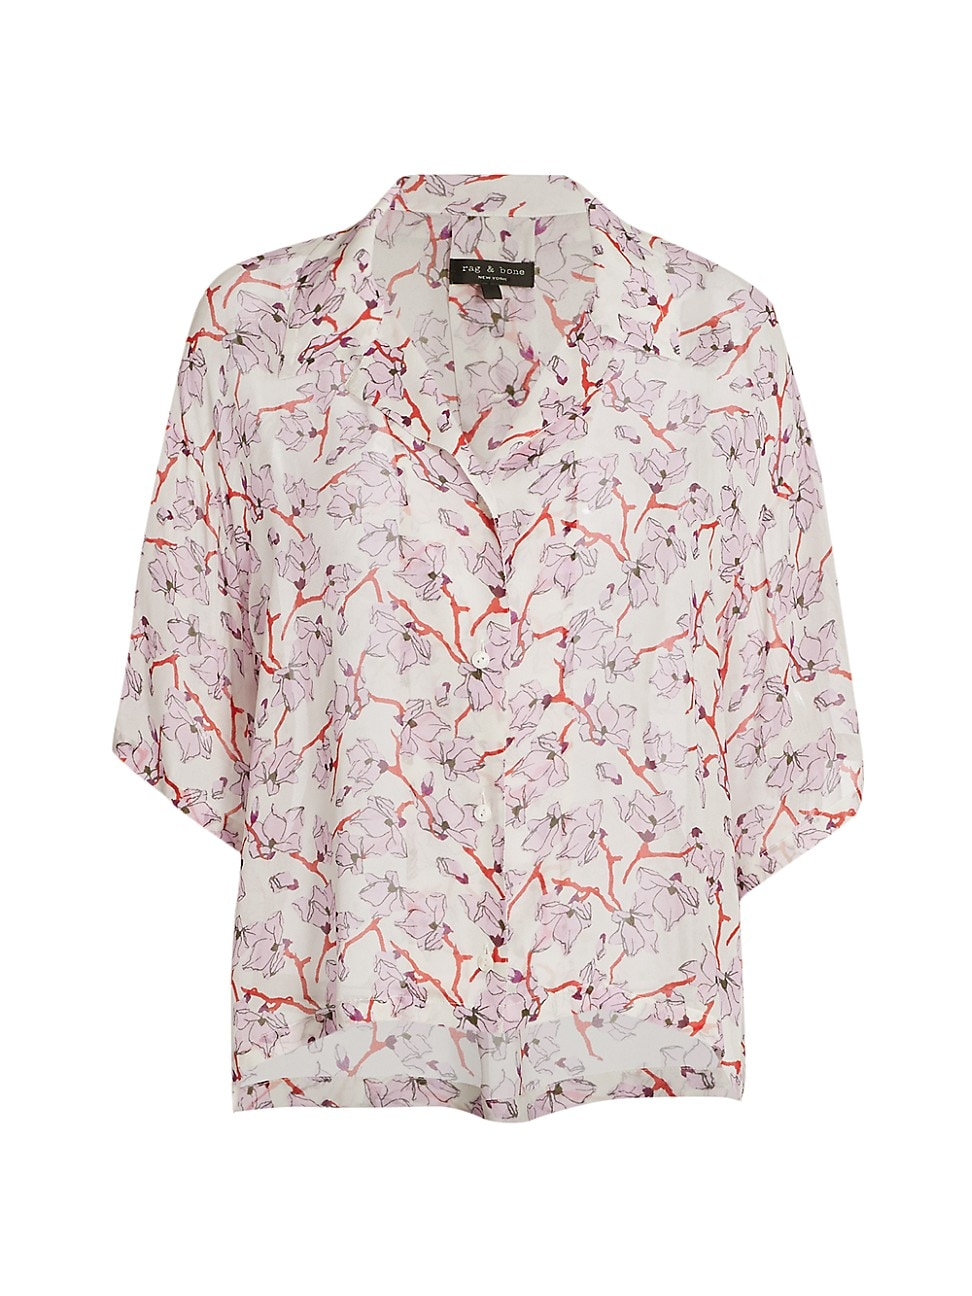 Rag & Bone WOMEN'S REED FLORAL SHORT-SLEEVE SHIRT